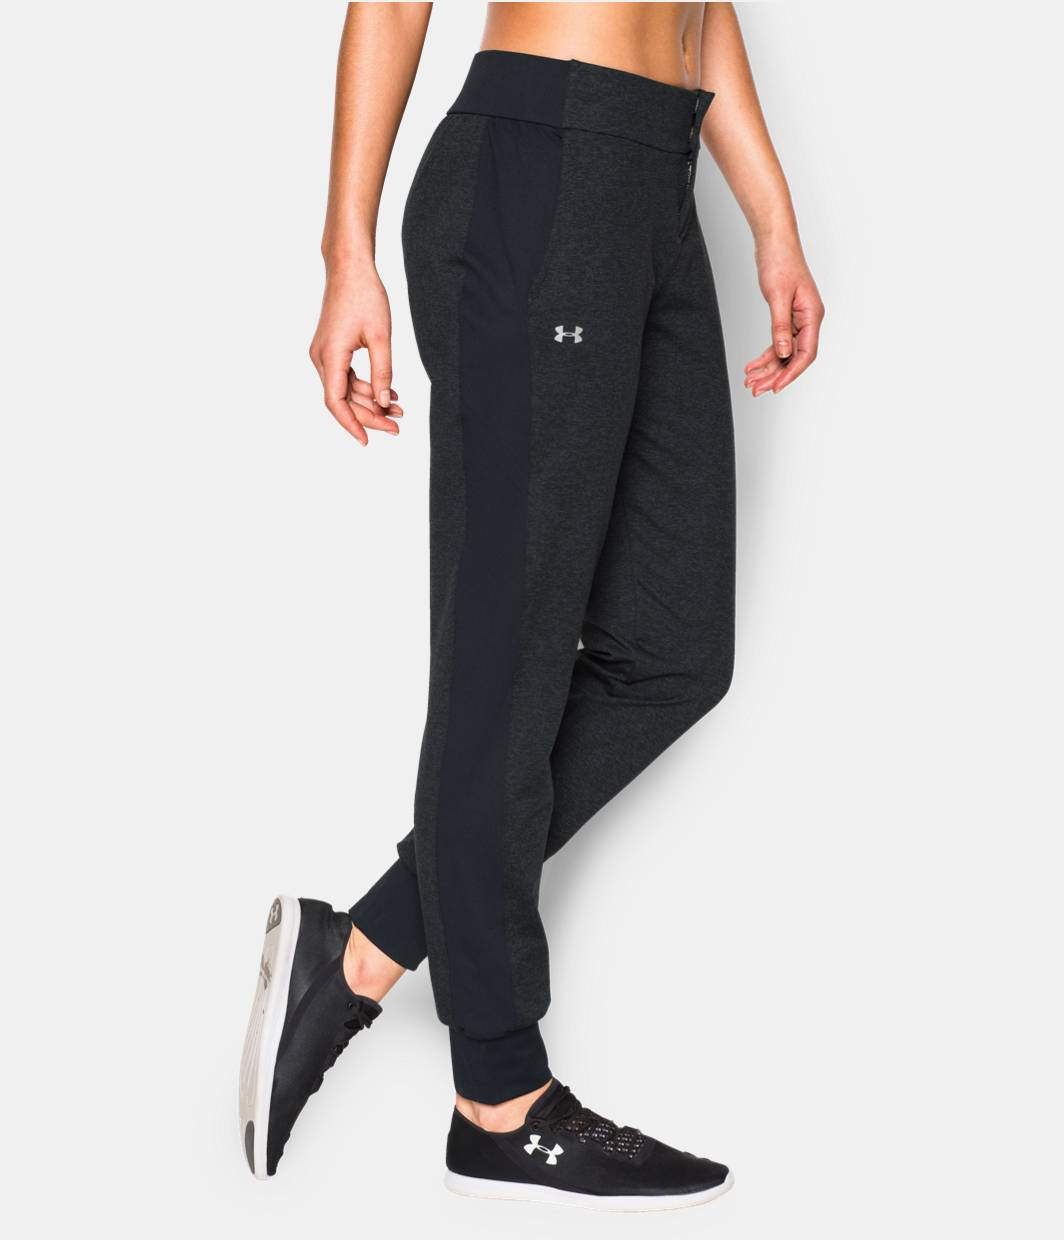 Simple There Are Countless Clothing Lines And Brands To Chose From When Updating Your Closet, But Why Not Choose A Company That Also Empowers Women? Check Out